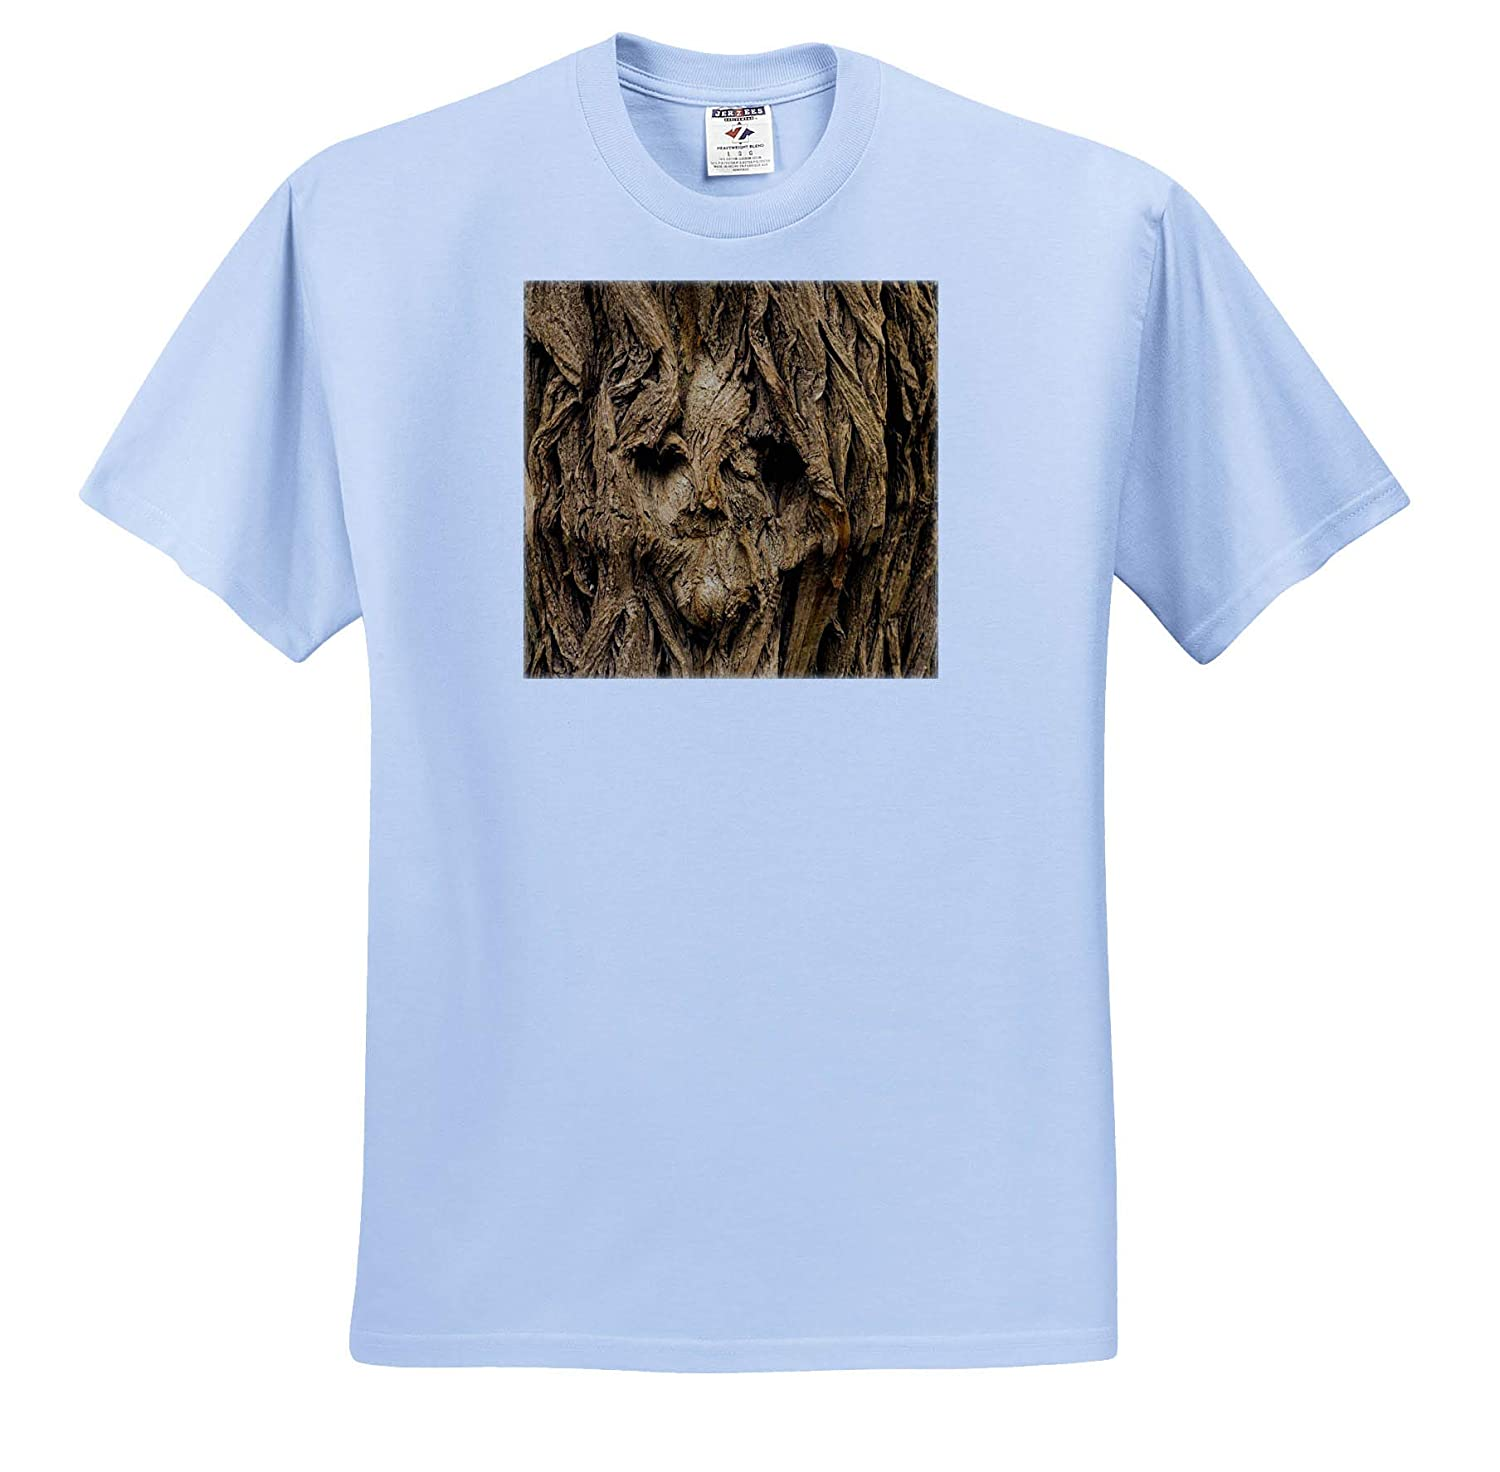 Image of Human Face On Textured Tree Weathered Woods 3dRose Lens Art by Florene ts/_316012 Adult T-Shirt XL